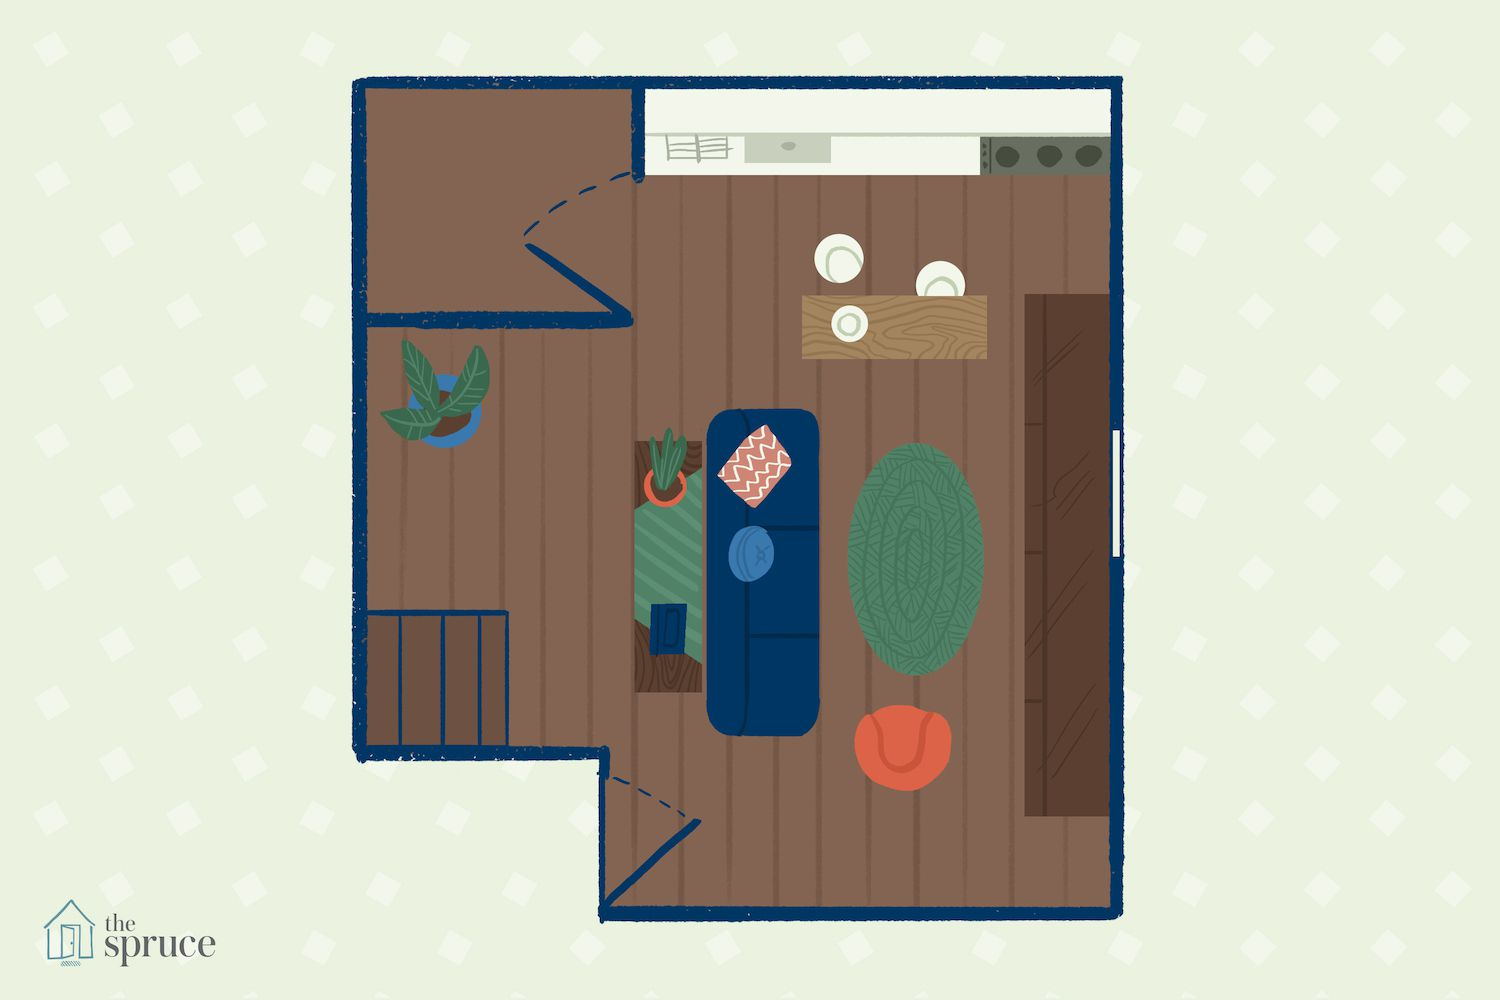 small living room illustration with storage